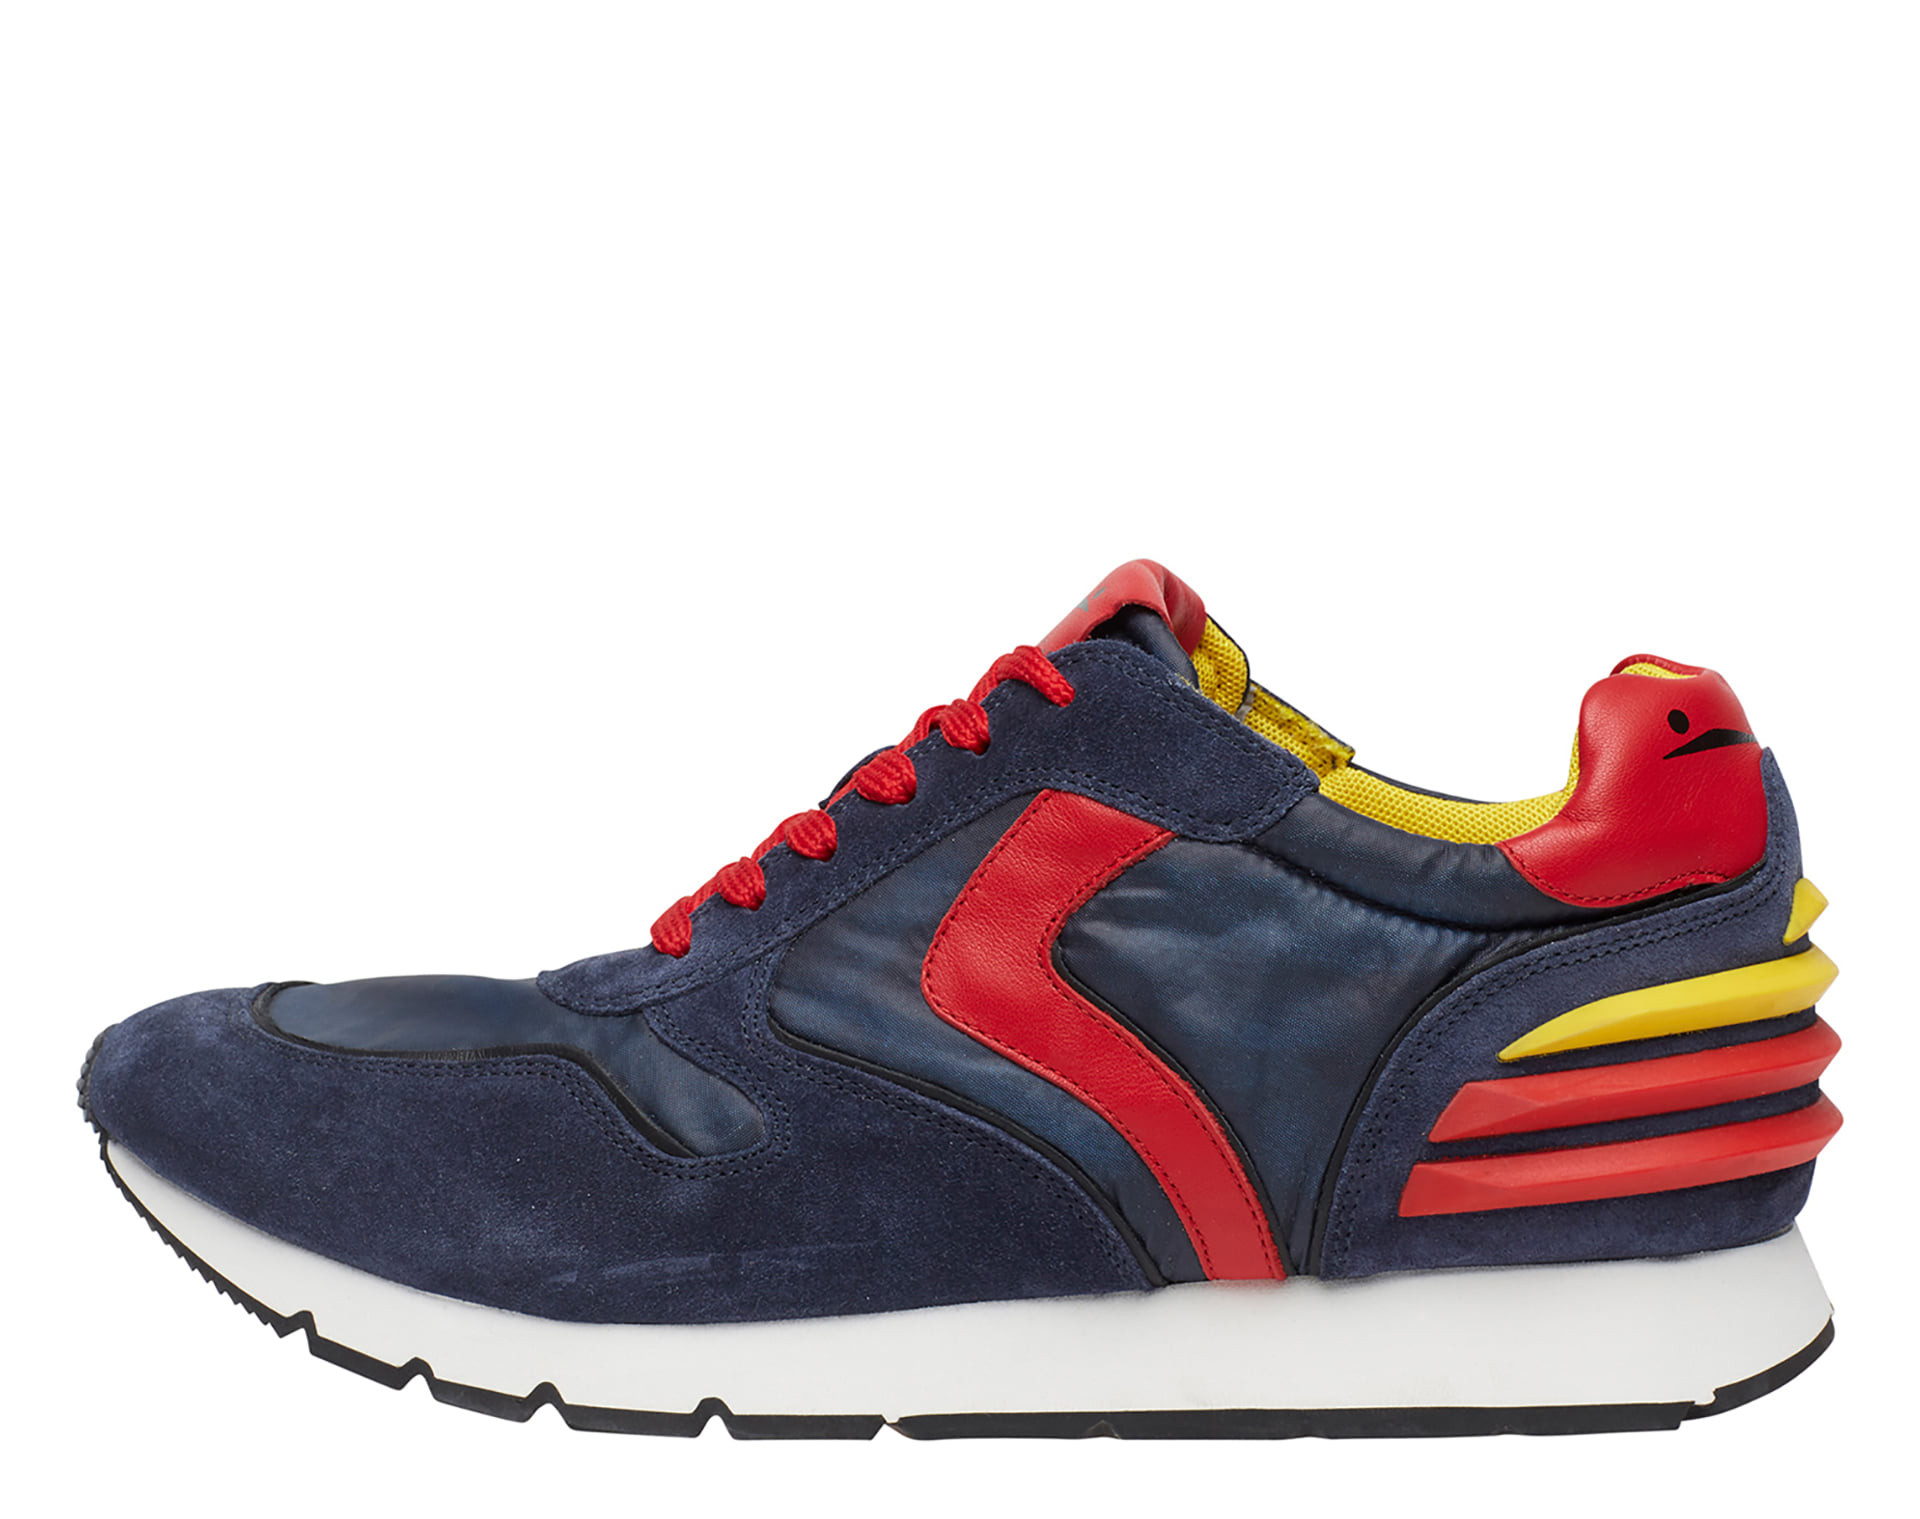 LIAM POWER - Leather and nylon sneakers - Indigo blue